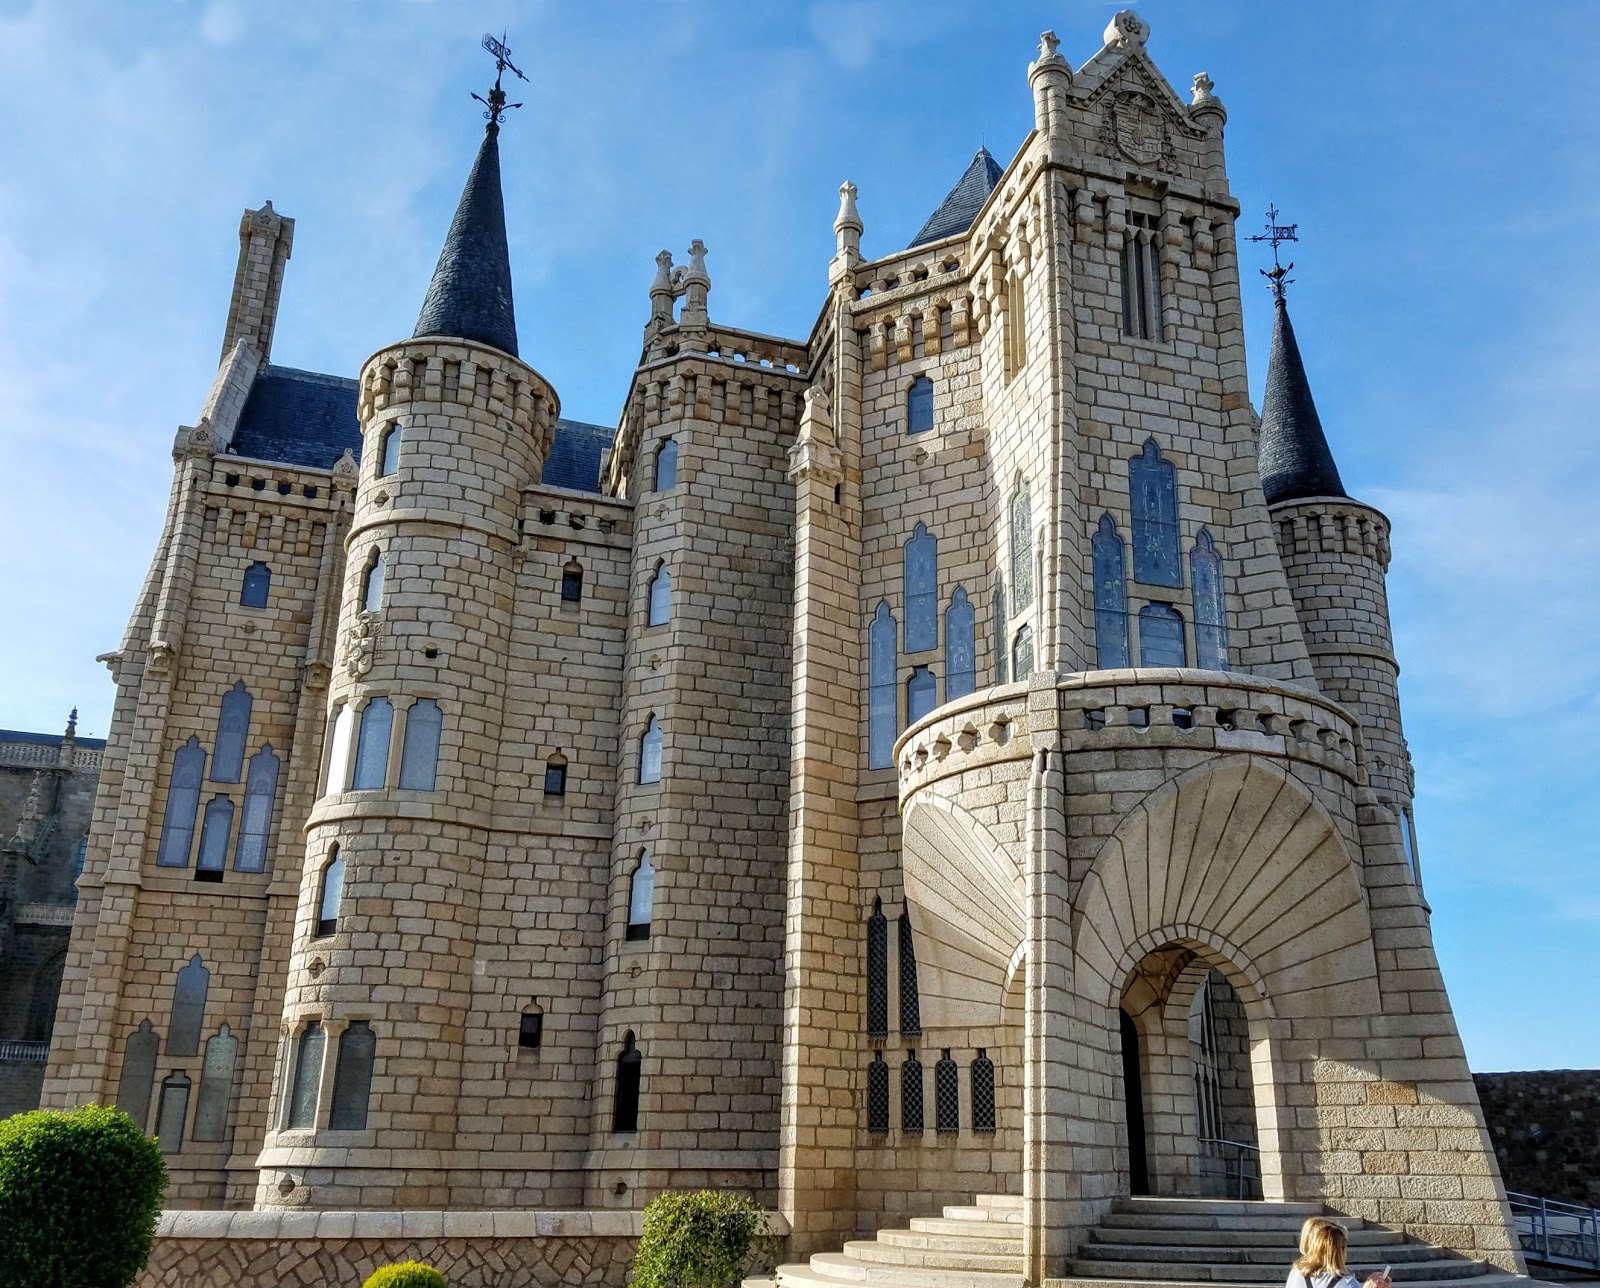 Gaudi's fairy-tale whimsical Bishop's Palace in Astorga features the Museum of the Ways dedicated to the pilgrims of the Camino de Santiago.